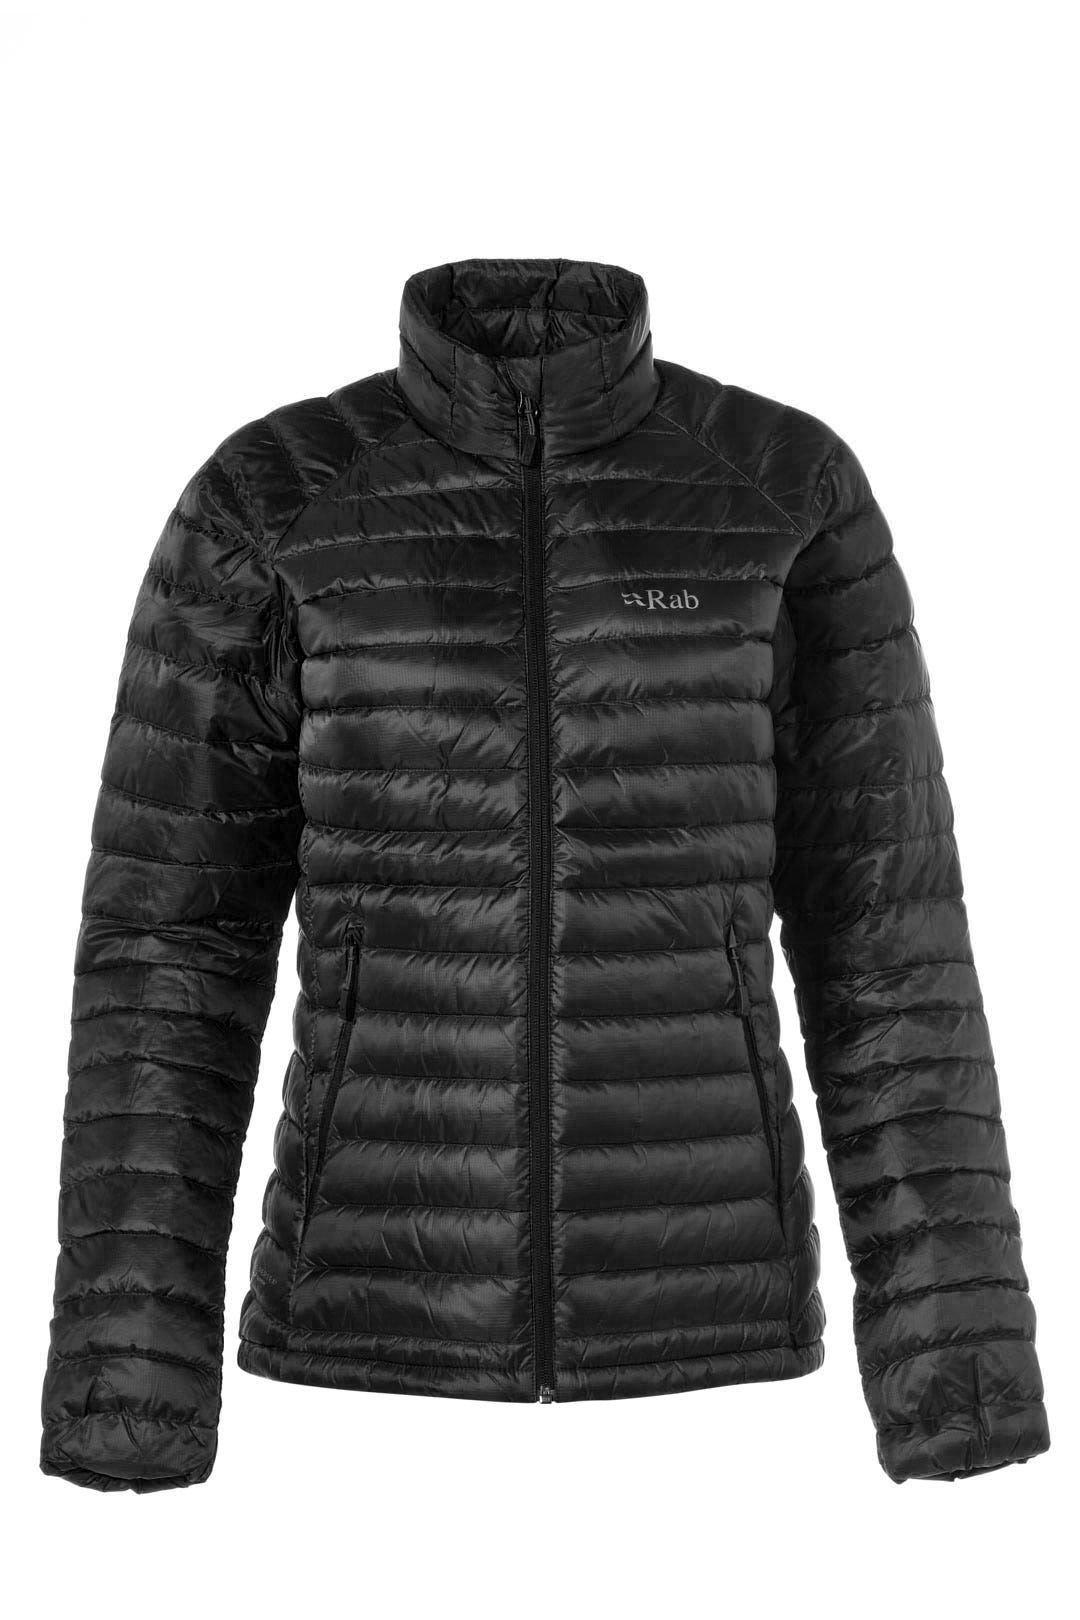 womens_microlight_jacket_black_QDA_95_BL.jpg